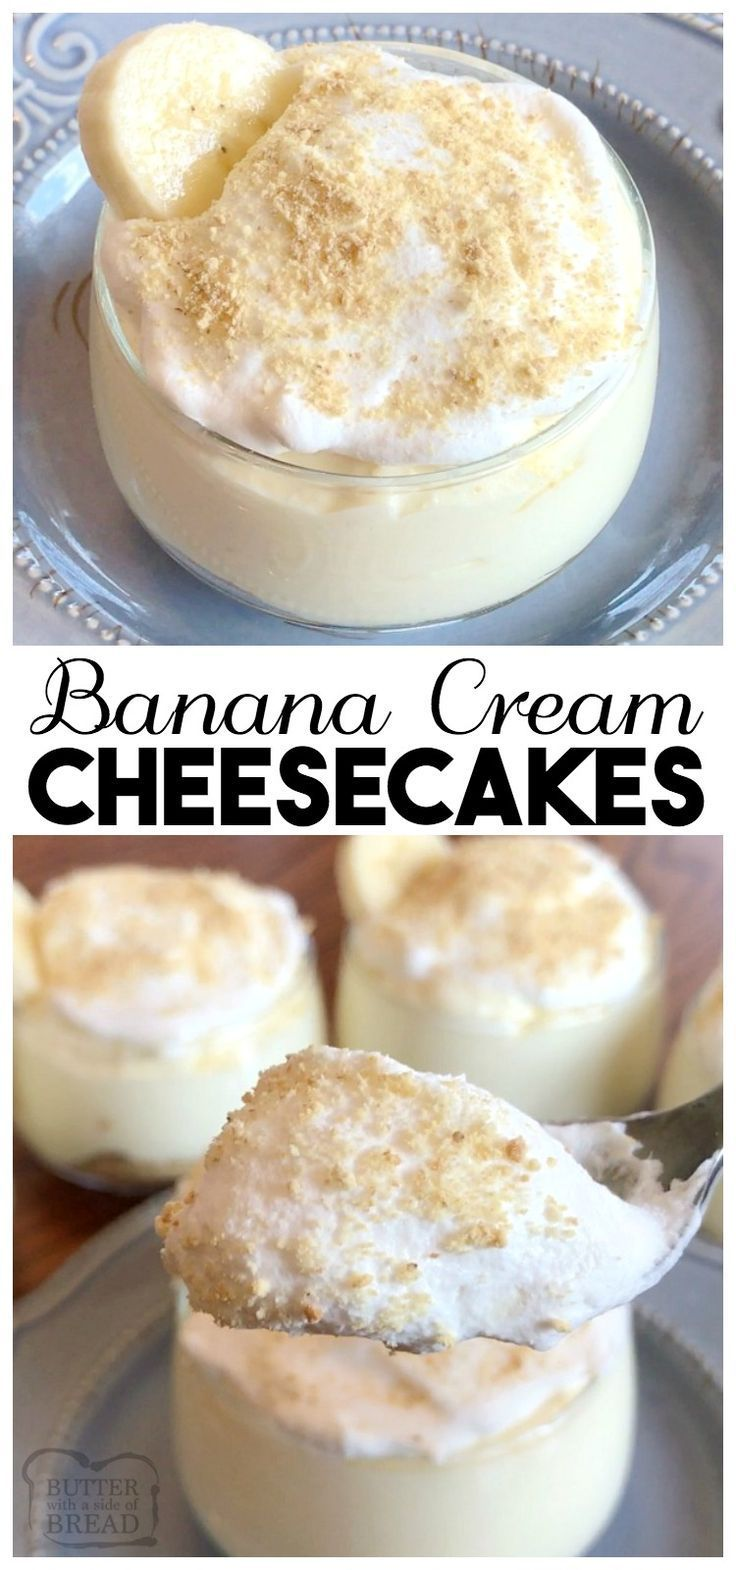 Banana Cream Cheesecakes made with banana pudding, whipped topping, and a graham cracker crust are the absolute perfect, easy to make sweet & creamy treat! Easy #cheesecake #recipe from Butter With A Side of Bread